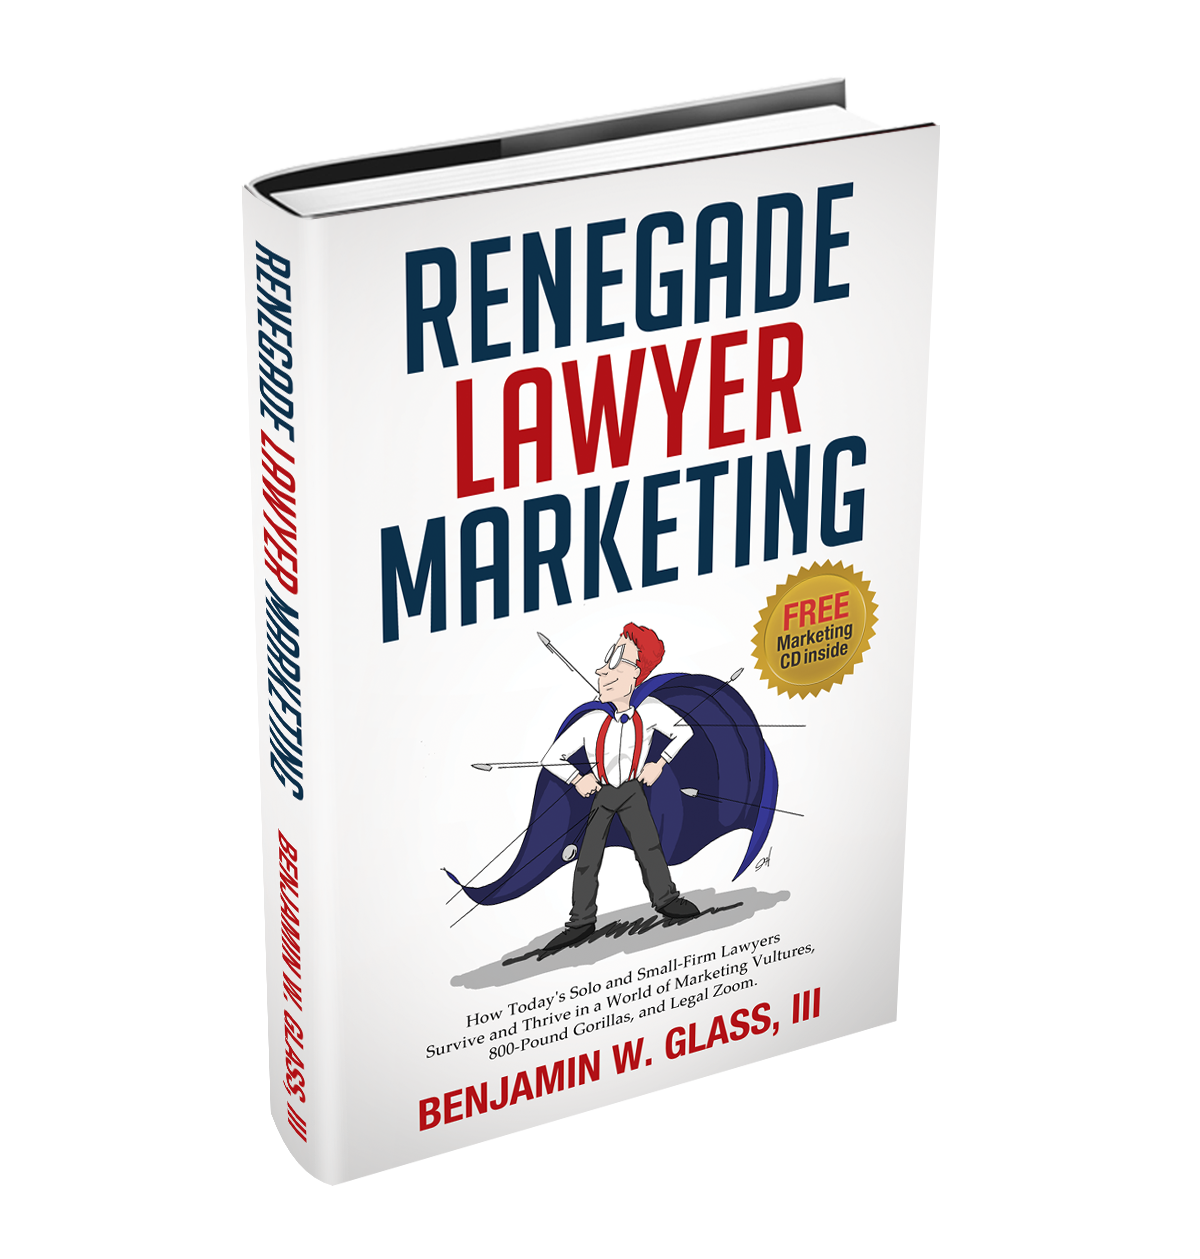 Request Your Copy of Renegade Lawyer Marketing for FREE!